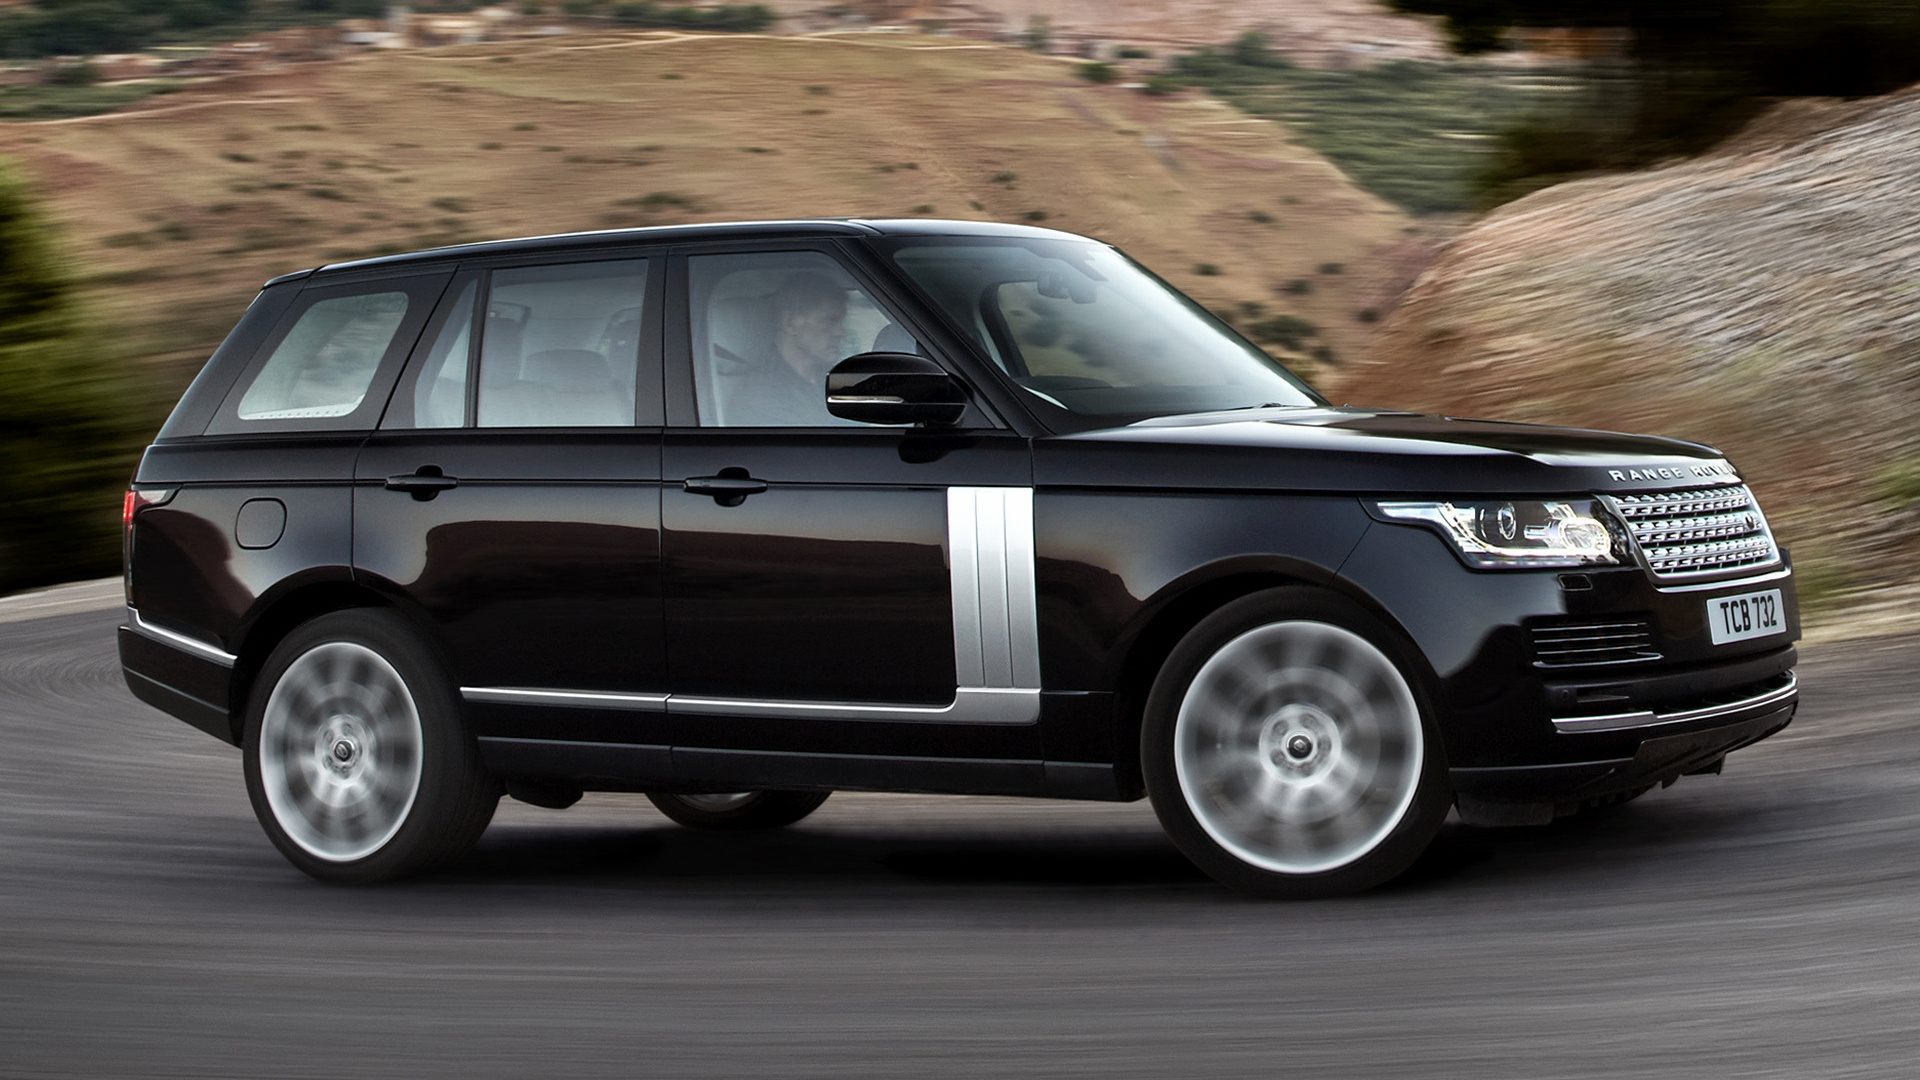 2012 Range Rover Vogue Uk Wallpapers And Hd Images Car